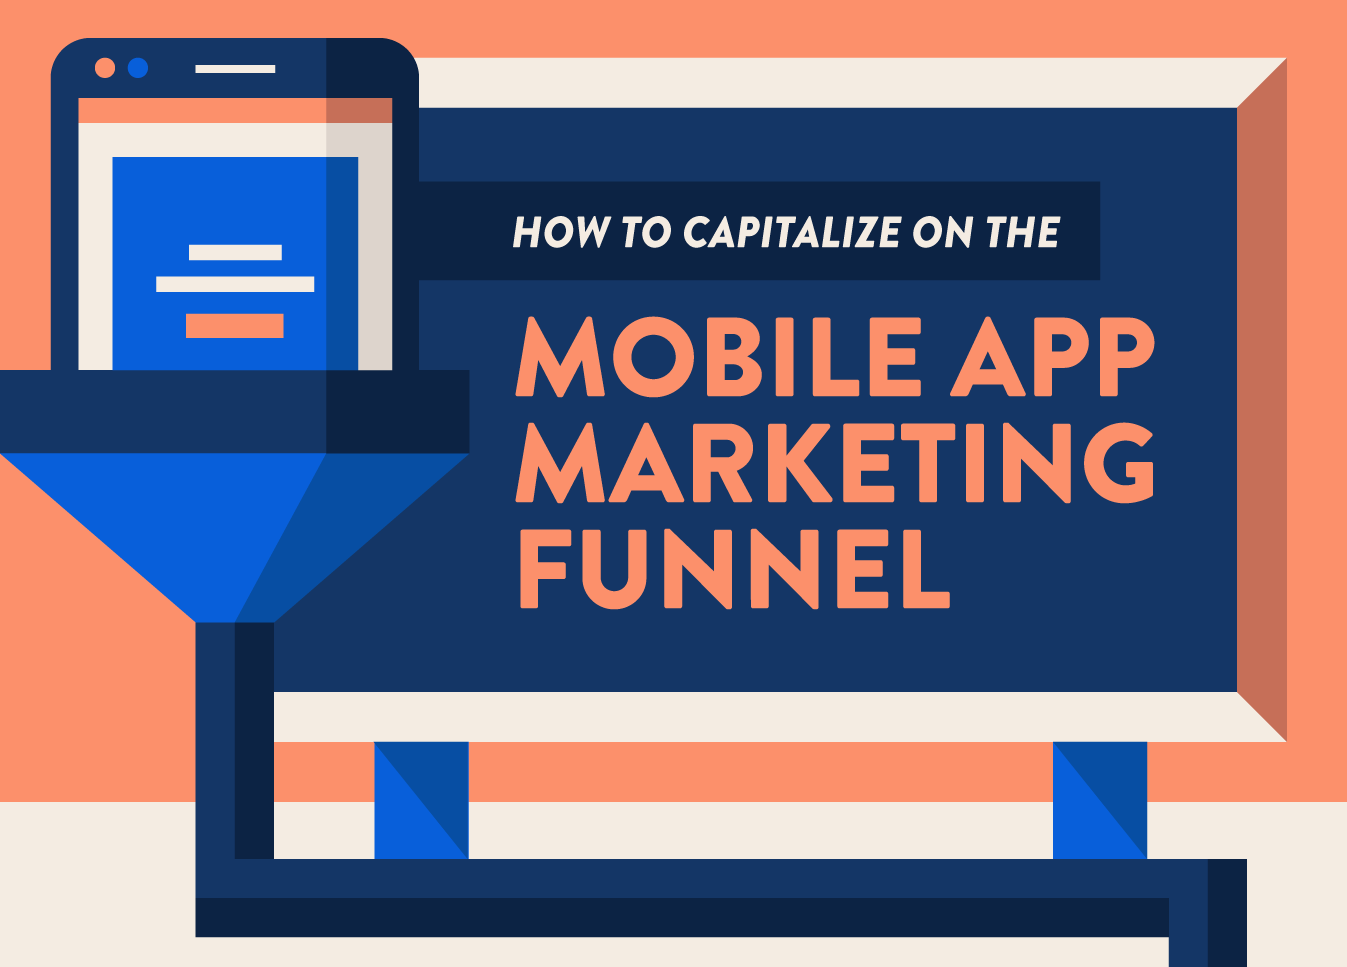 Marketing Funnel For Mobile Apps: What You Need To Know